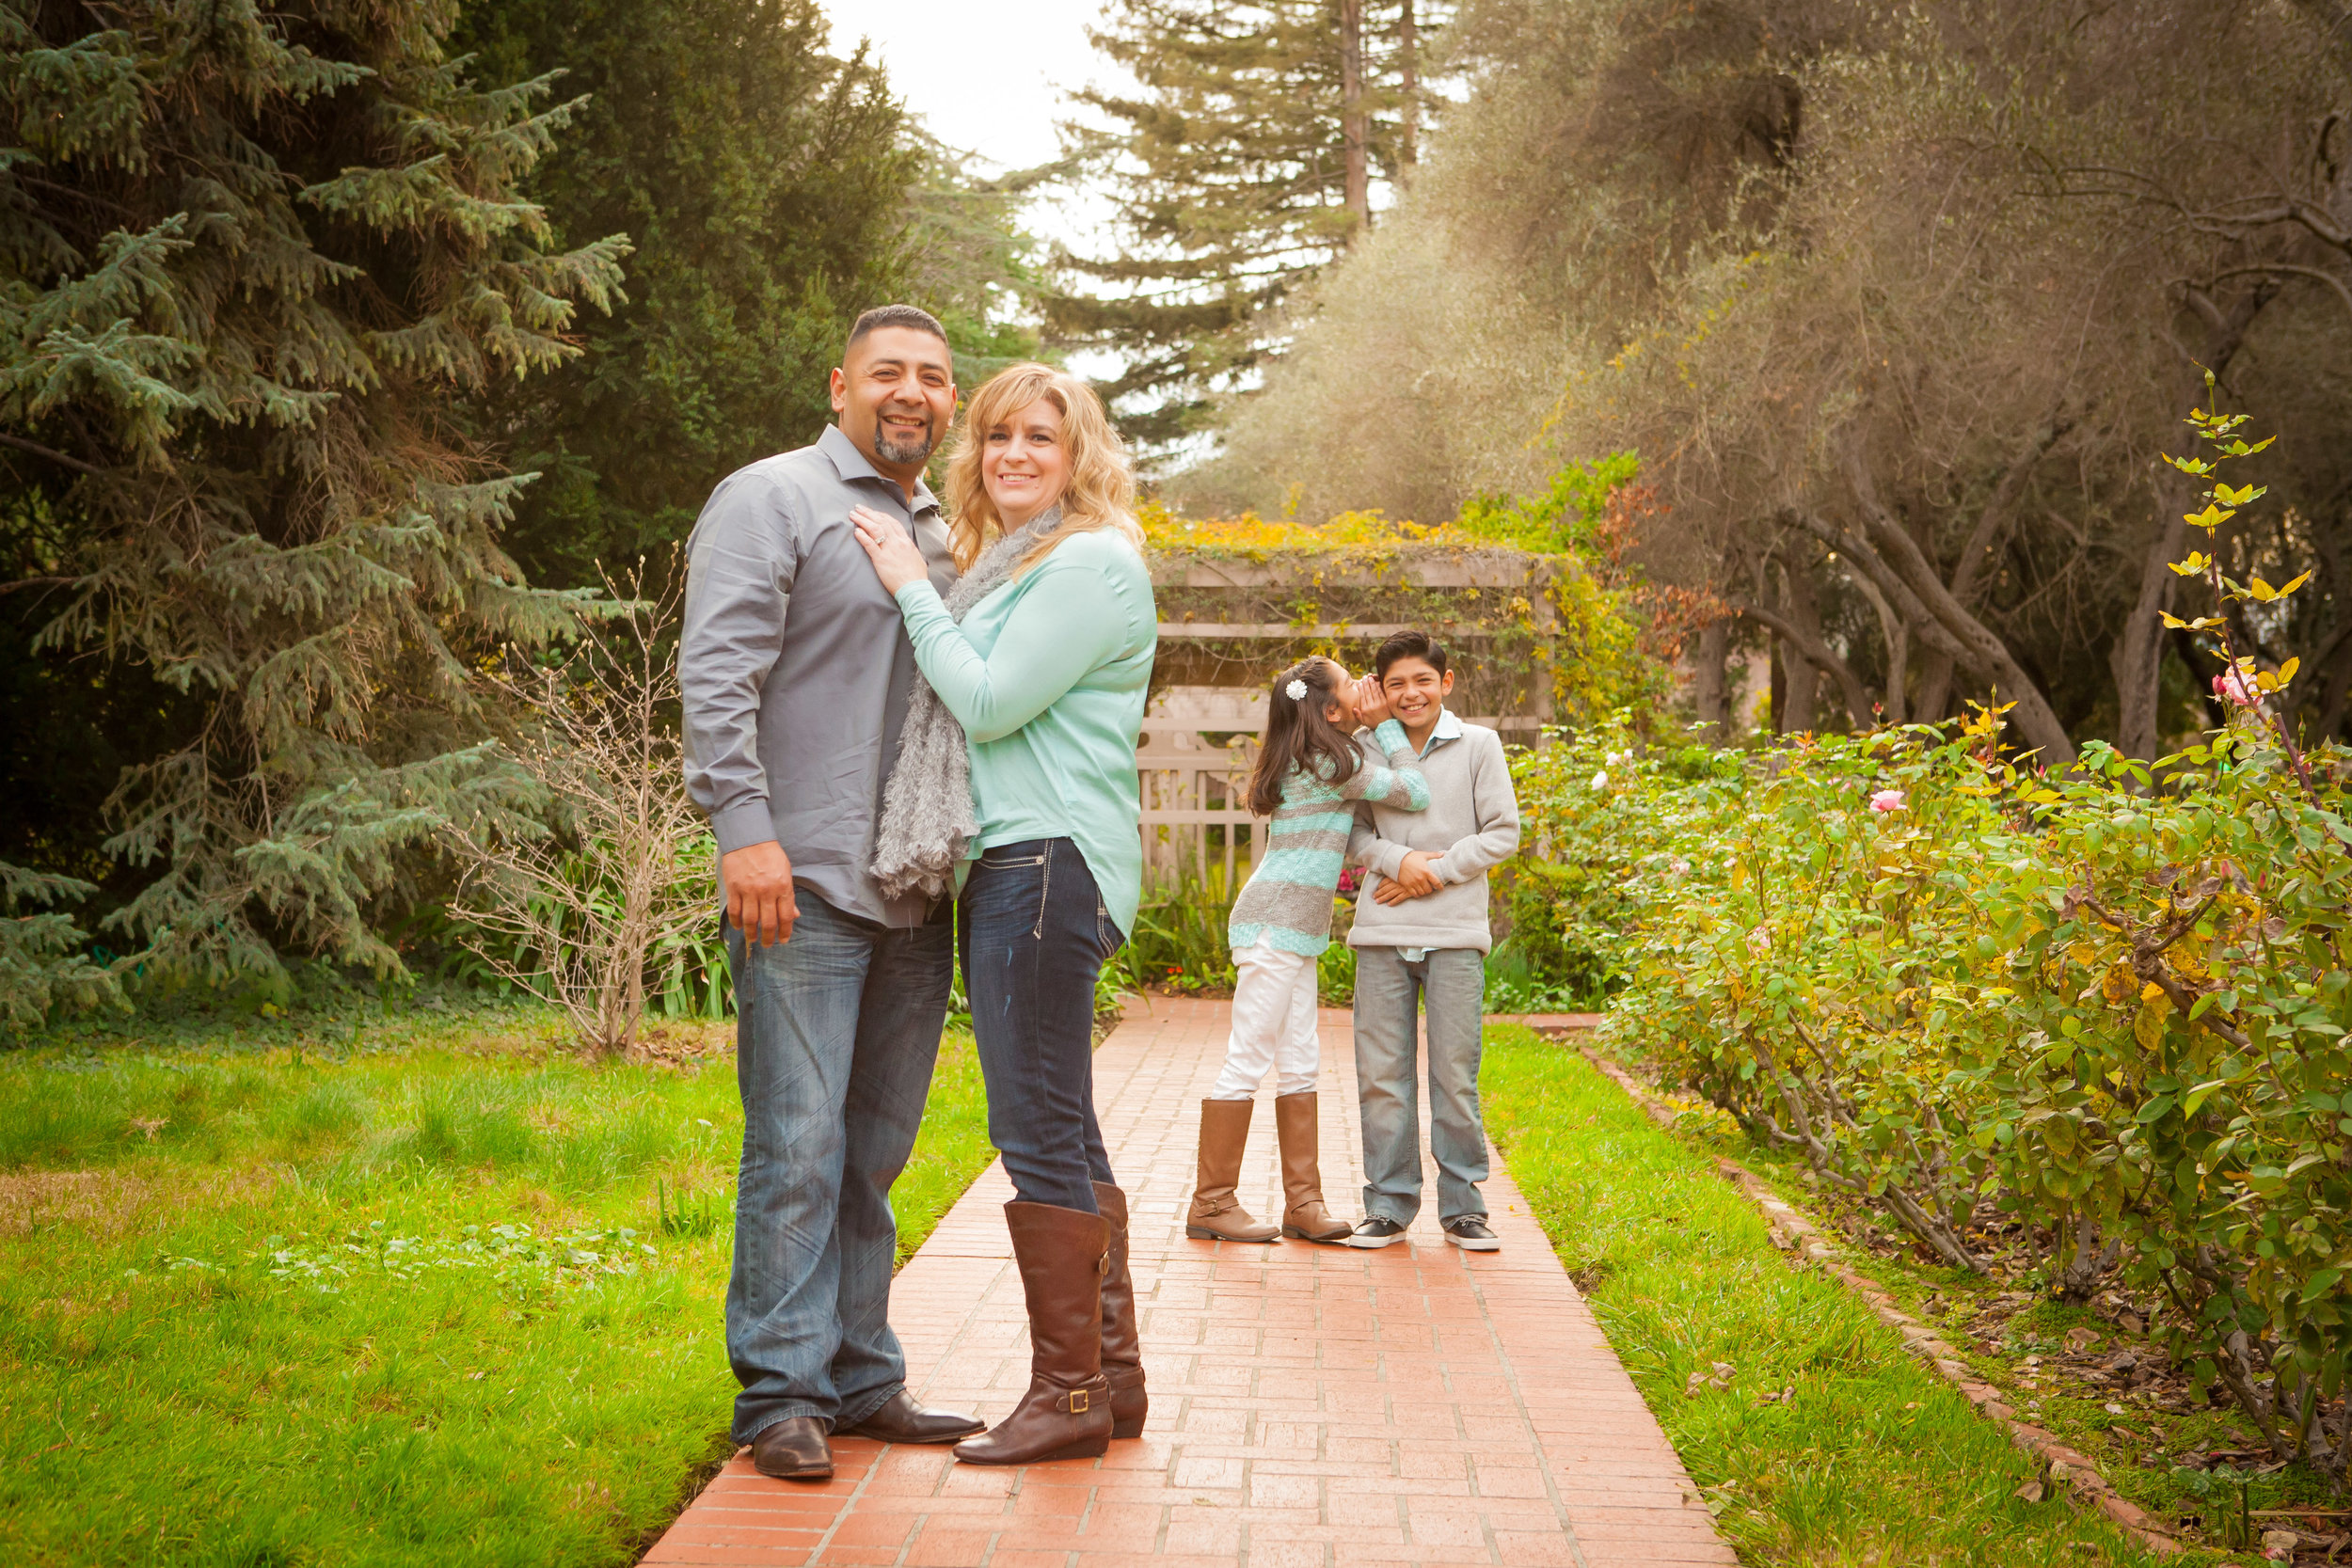 Family Portraits - As a family owned and operated business, we not only treat you just like family, but take pride in fostering family identity and love. Take a walk with us, as we capture what makes your family amazing! Starting at $350.Call 408.520.0053 today for $50 off for first time clients! Two families get $100 off if you book together! Thats $500 for two families instead of $700. So save big with friends!